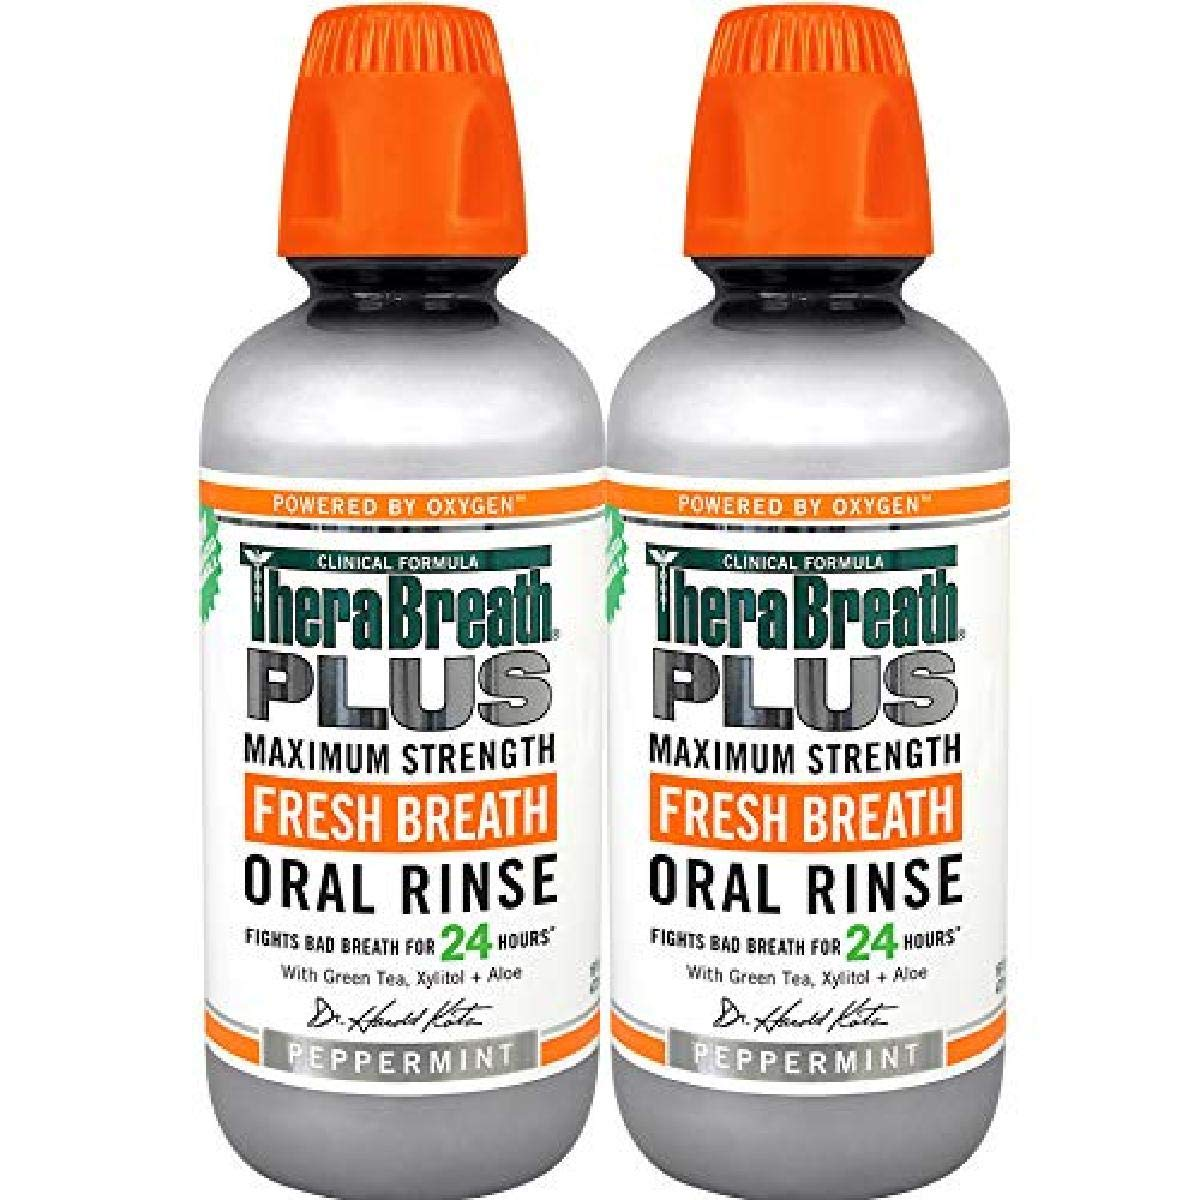 TheraBreath Plus MaximumStrength Oral Rinse Ounce Bottle, ⭐️ Exclusive, Fresh Mint Flavor, ⭐️ Exclusive, 32 Fl Oz